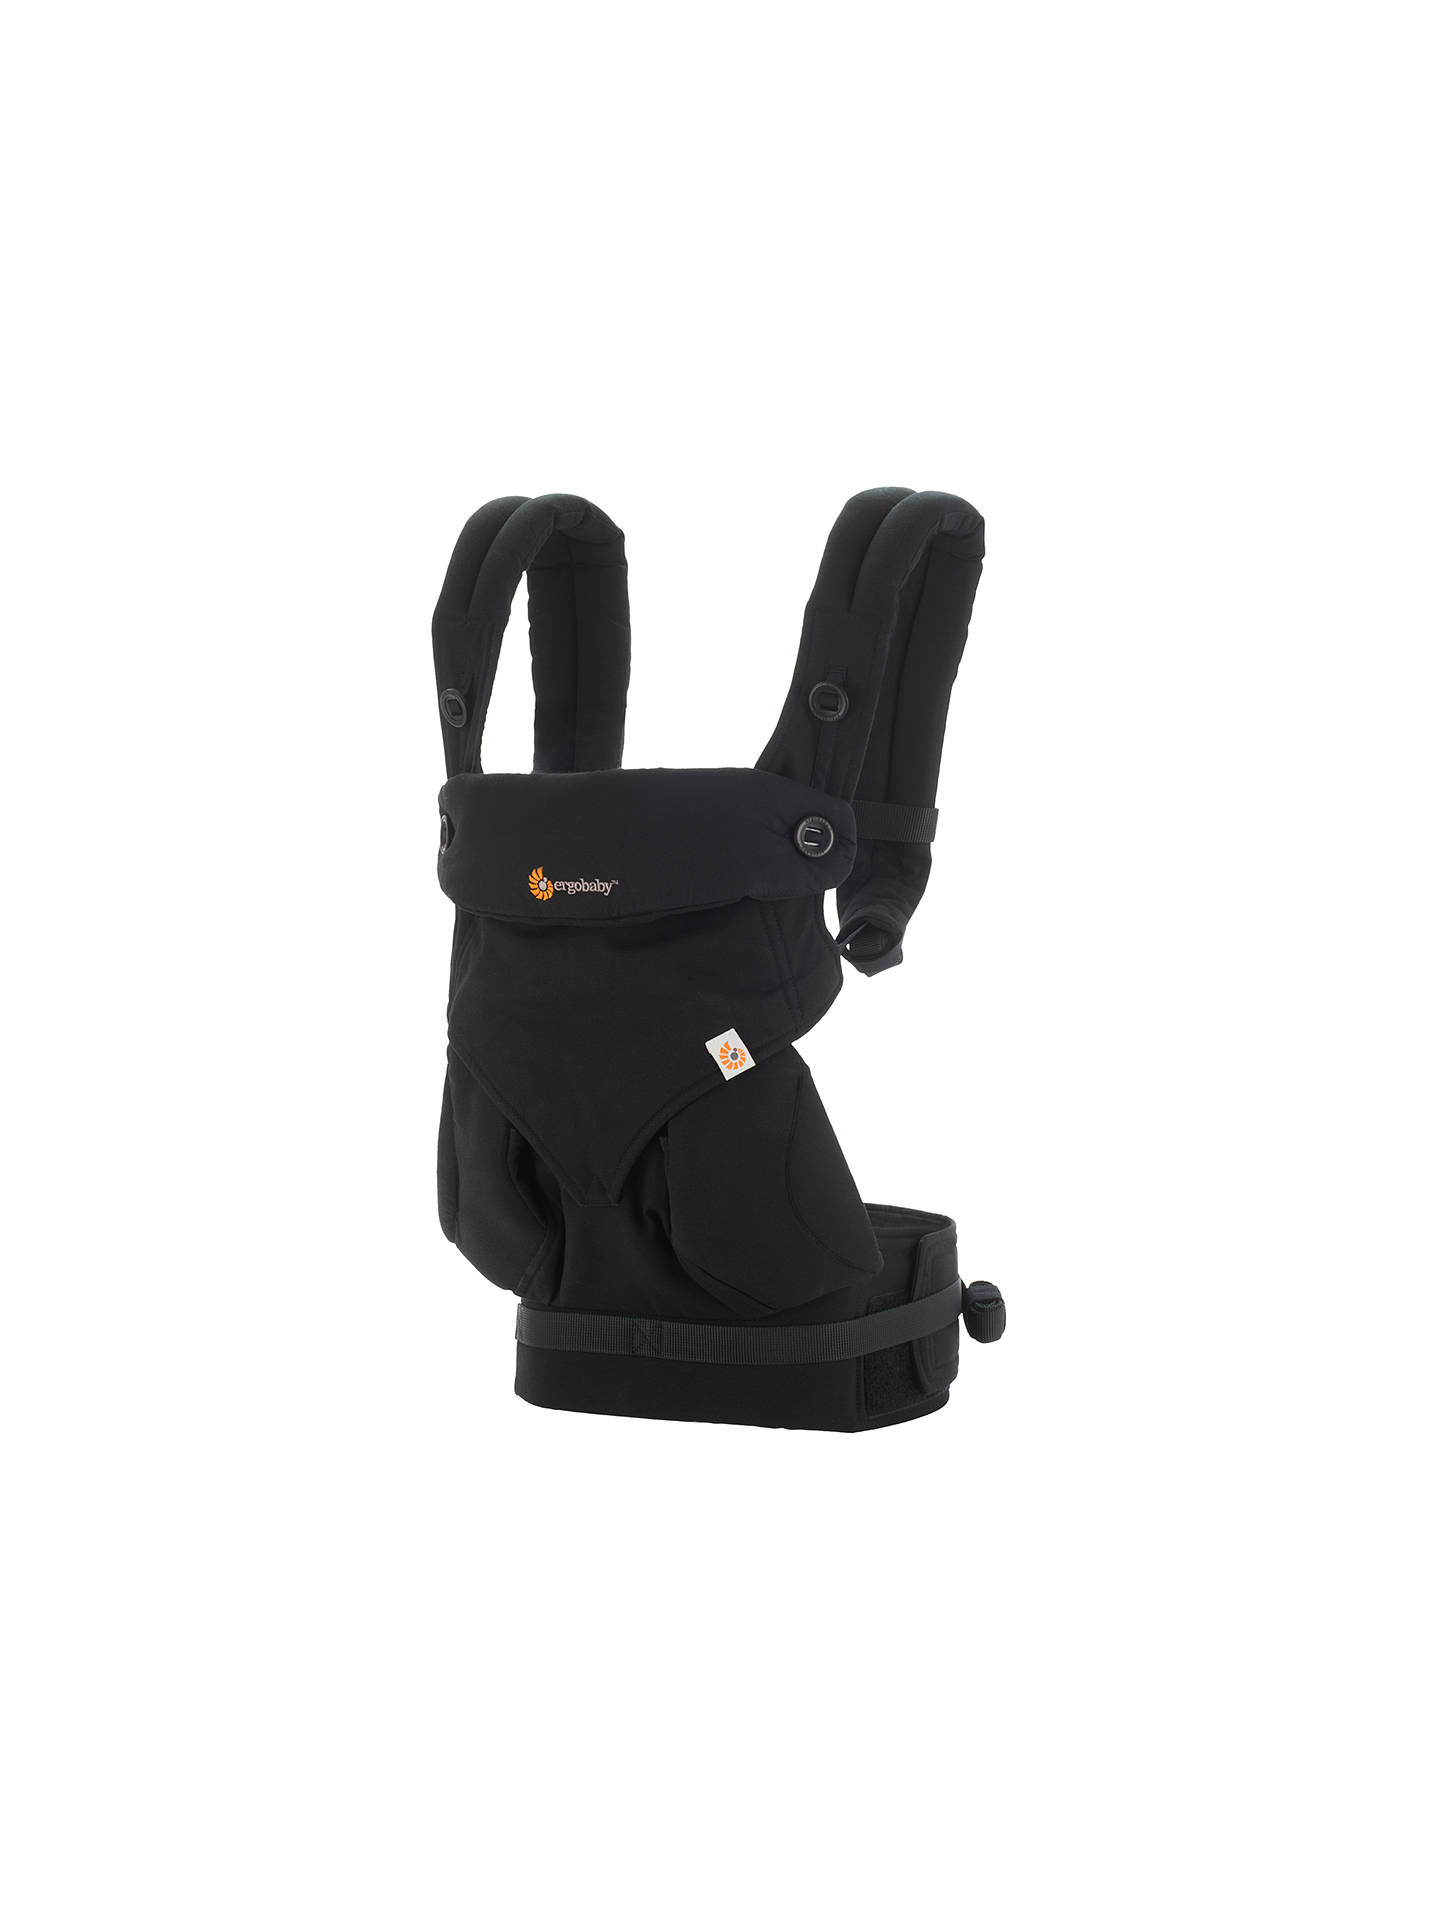 Buy Ergobaby Four Position 360 Baby Carrier, Pure Black Online at johnlewis.com